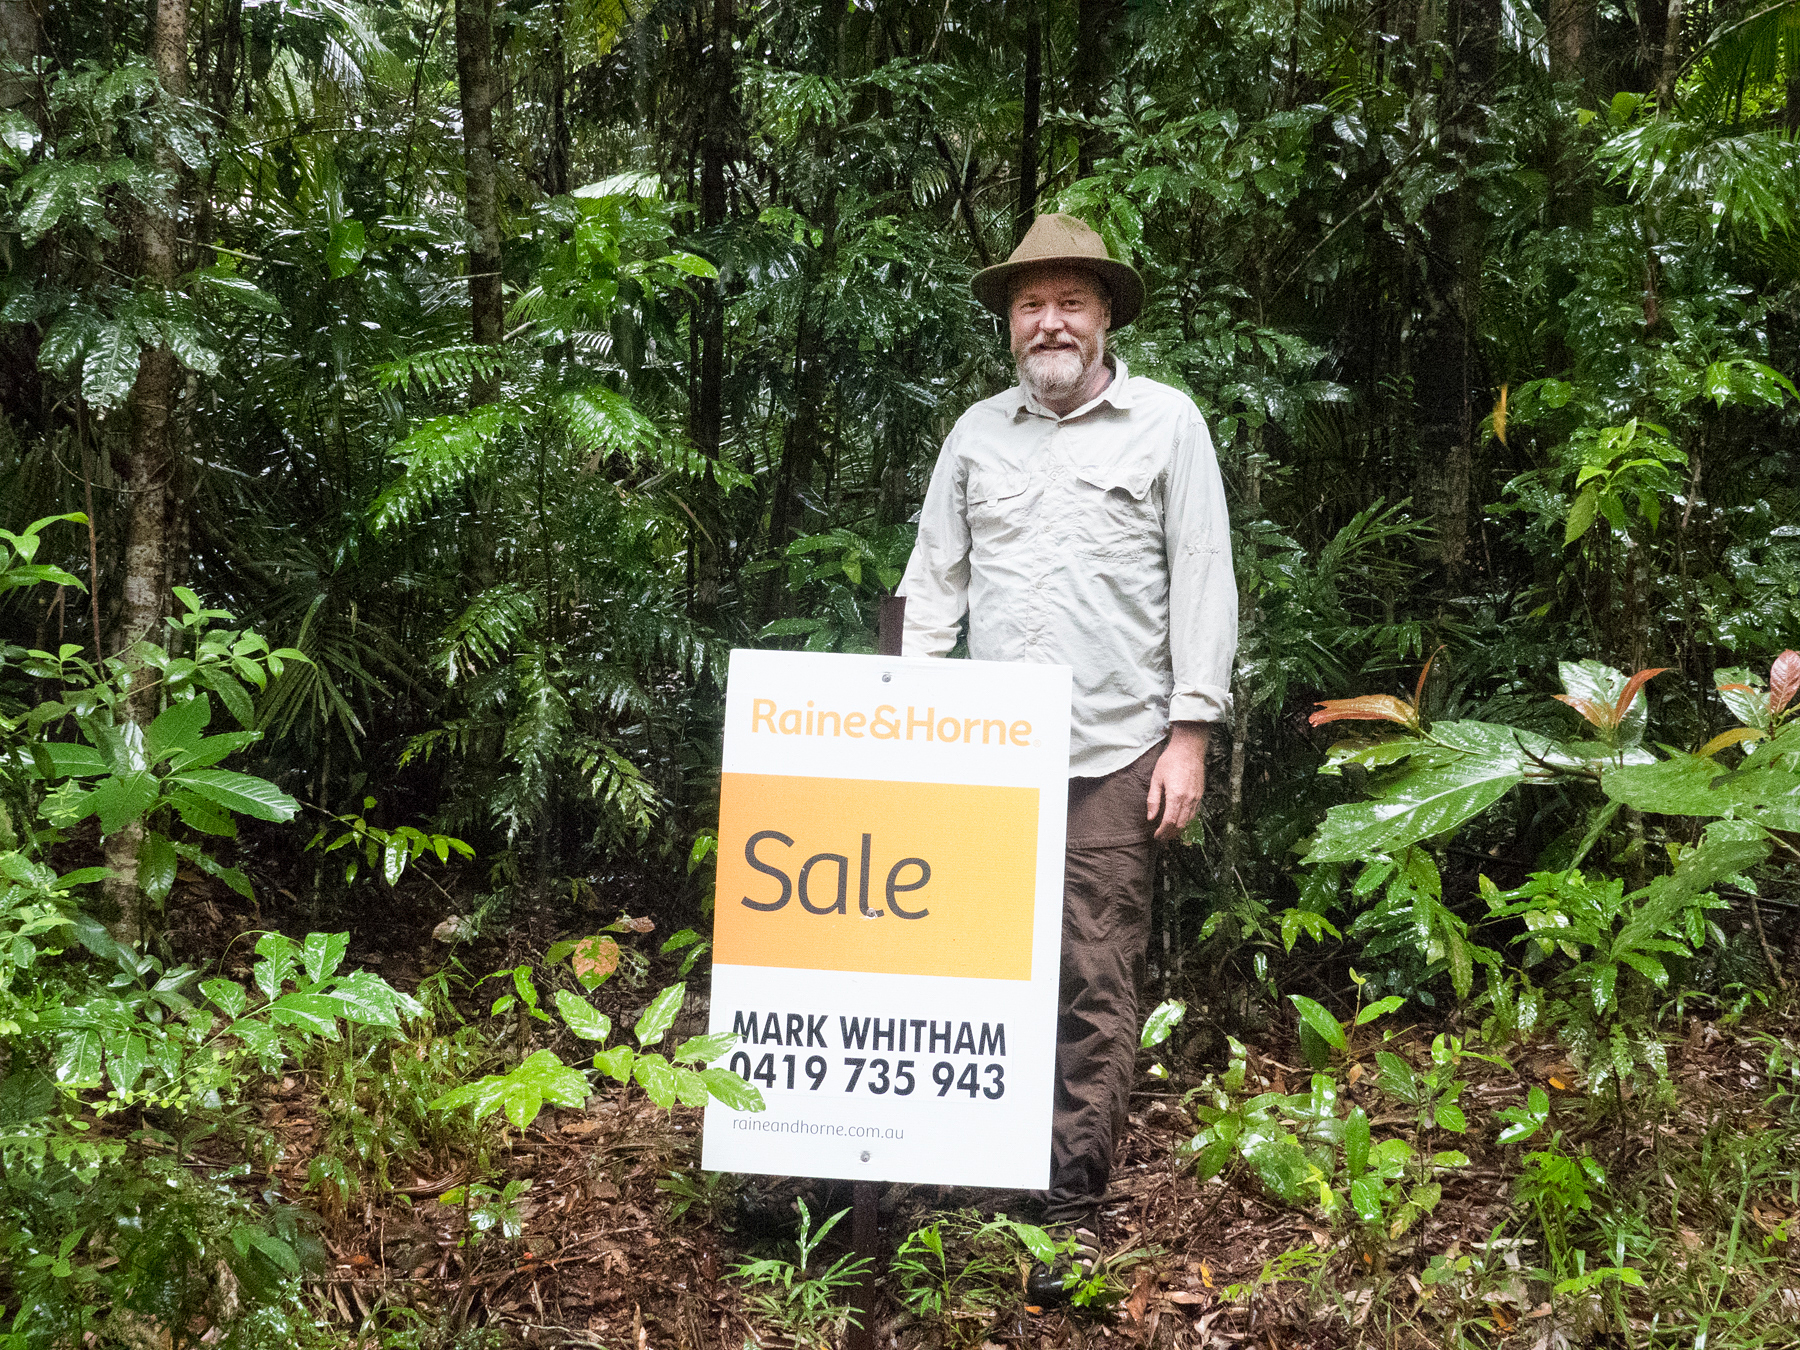 Kelvin Davies at Lot 390 Maple Road in the Daintree Rainforest